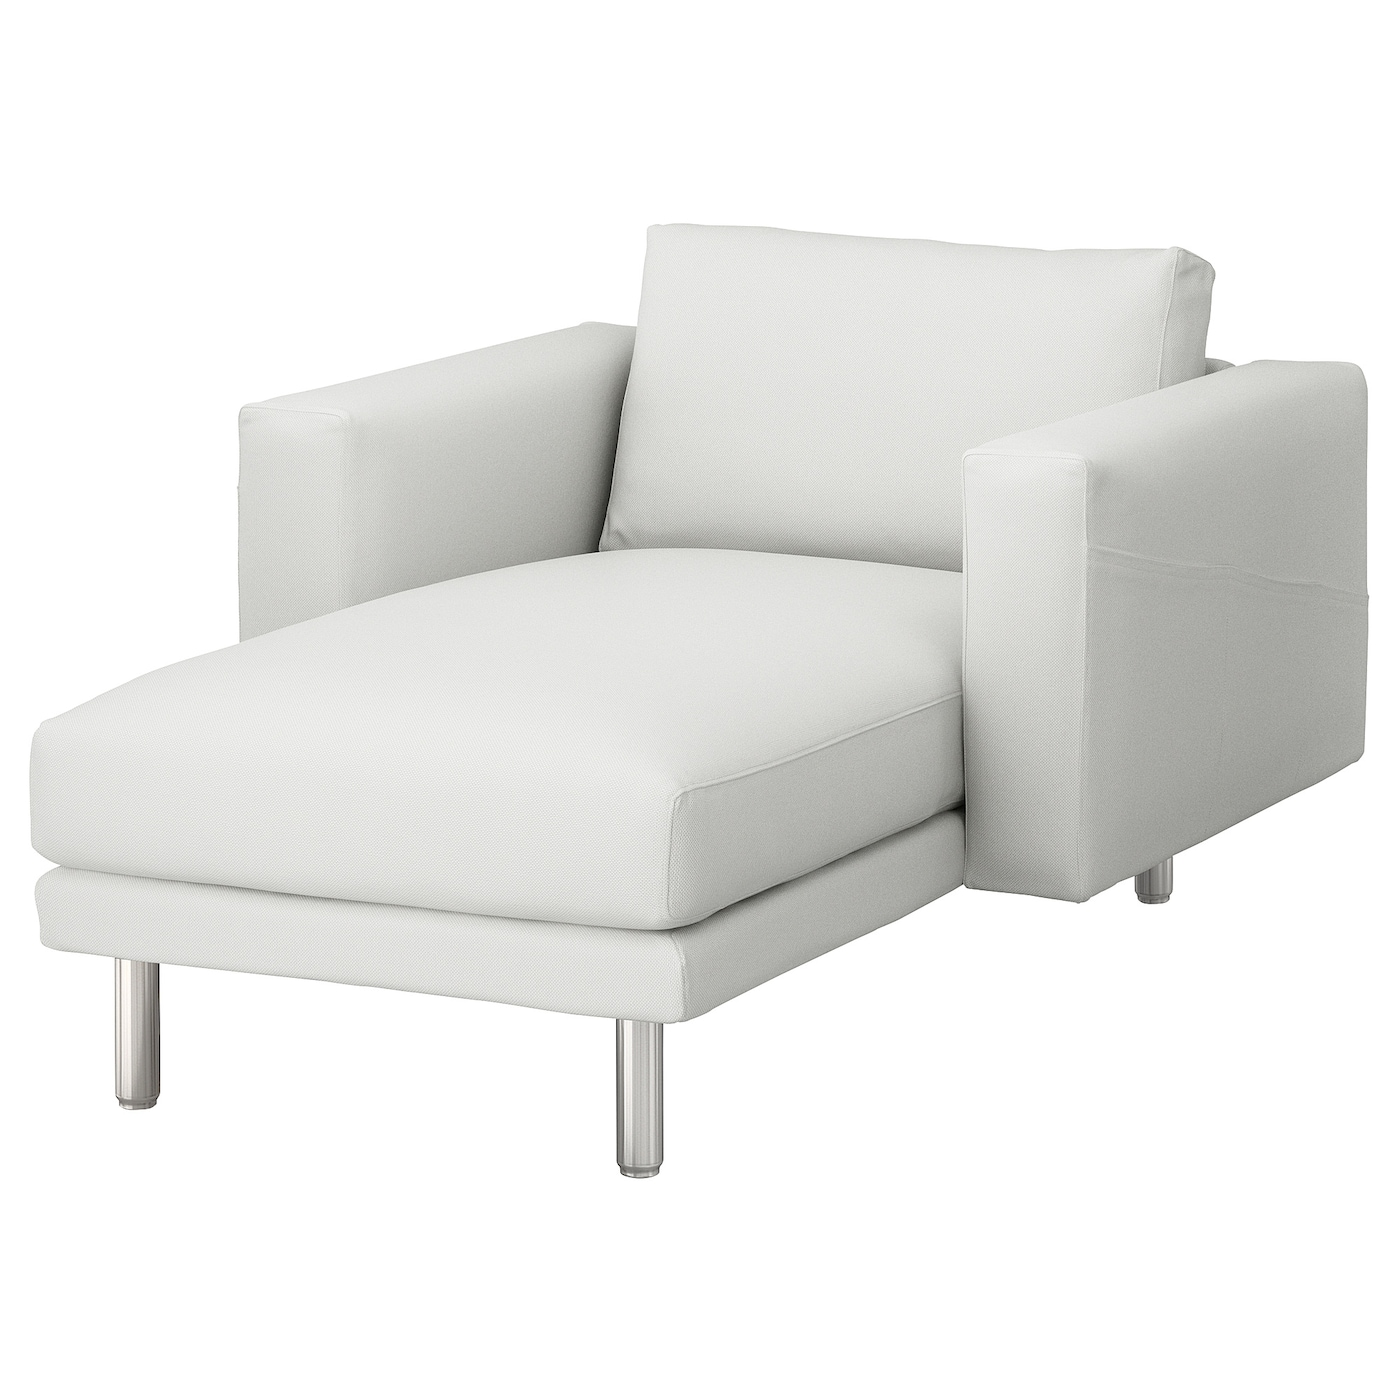 norsborg chaise longue finnsta white metal ikea. Black Bedroom Furniture Sets. Home Design Ideas